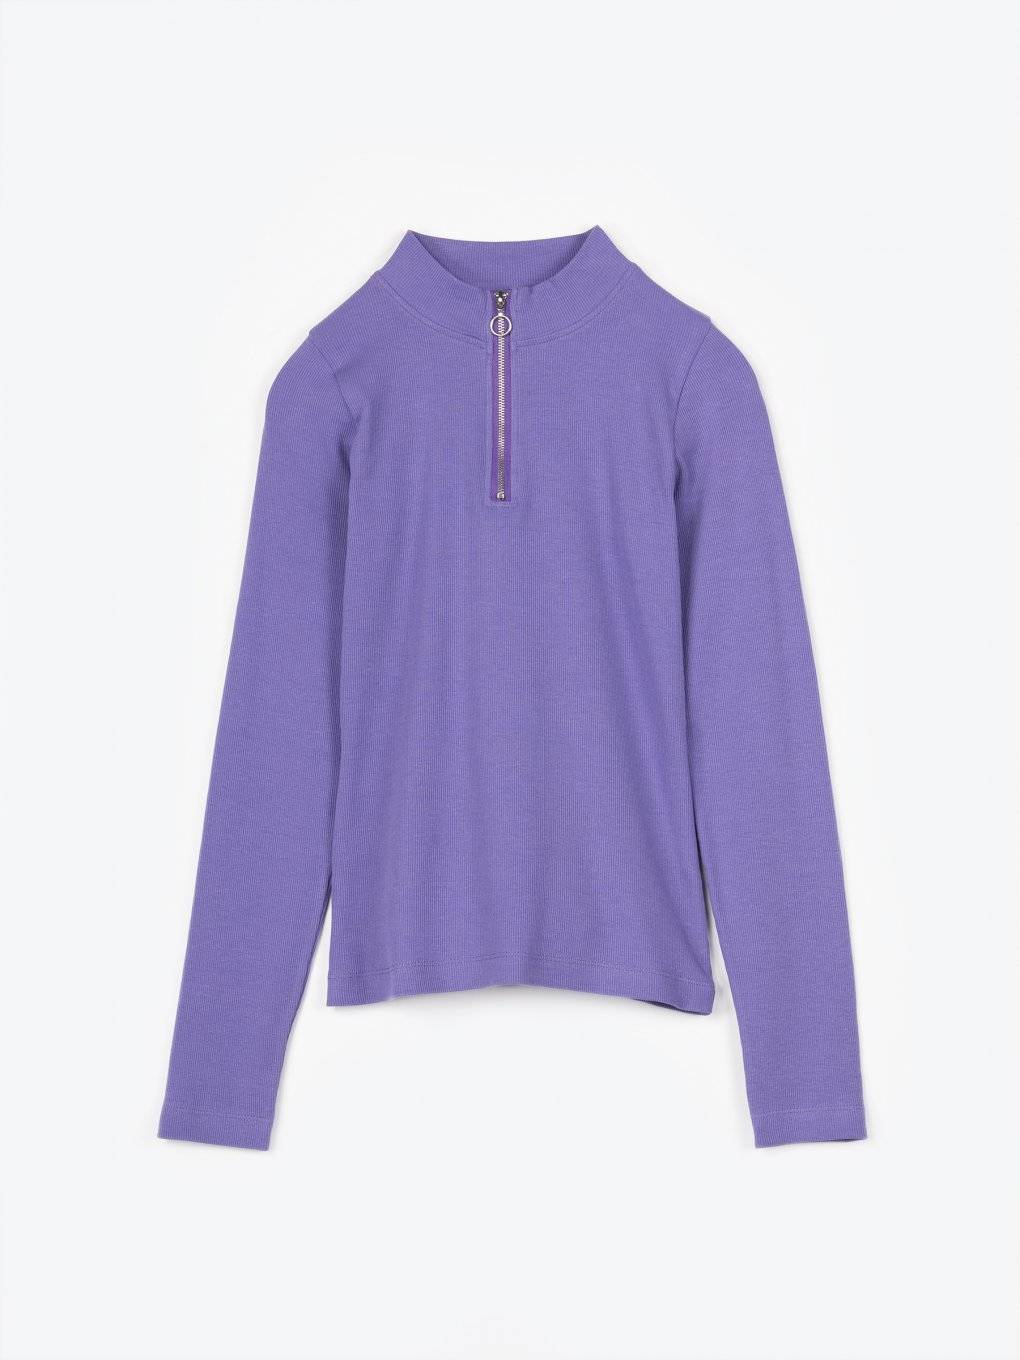 Long sleeve t-shirt with zipper